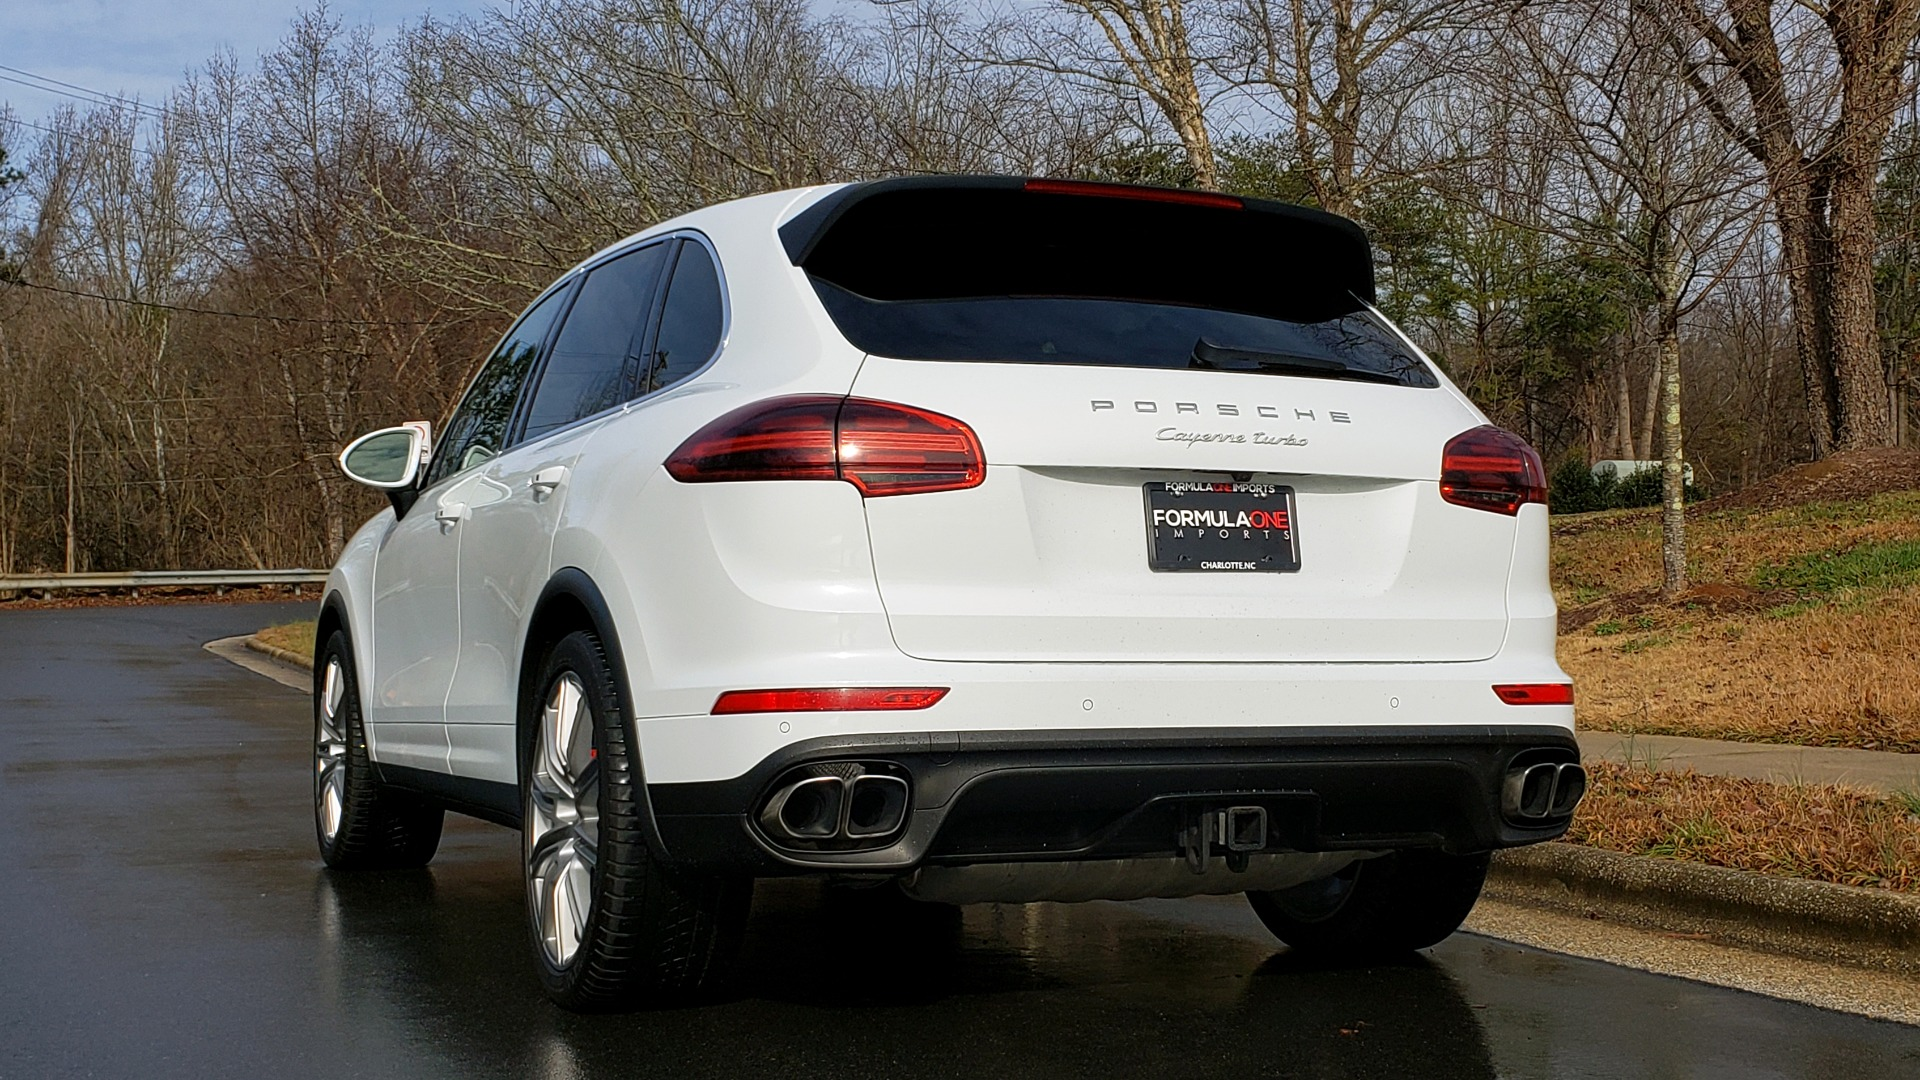 Used 2015 Porsche CAYENNE TURBO V8 / PREMIUM / NAV / SUNROOF / PARK ASSIST / LCA / REARVIEW for sale $47,995 at Formula Imports in Charlotte NC 28227 5